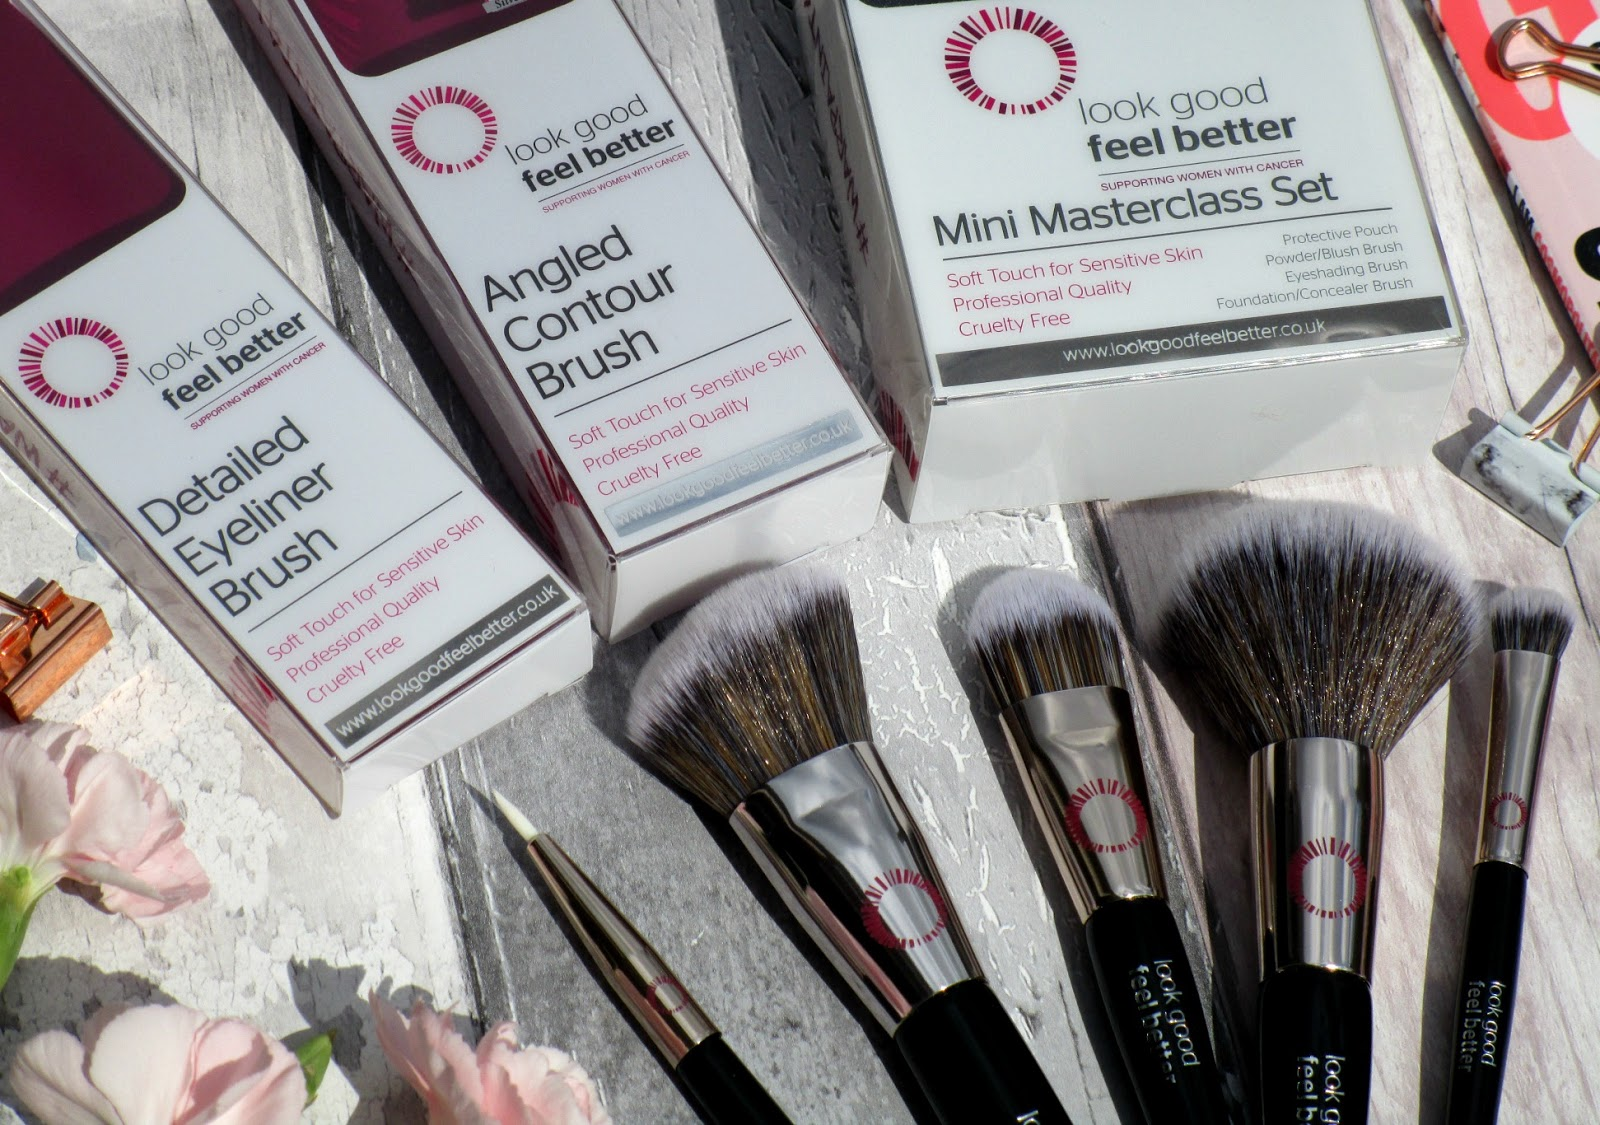 Look Good Feel Better Makeup Brushes Review